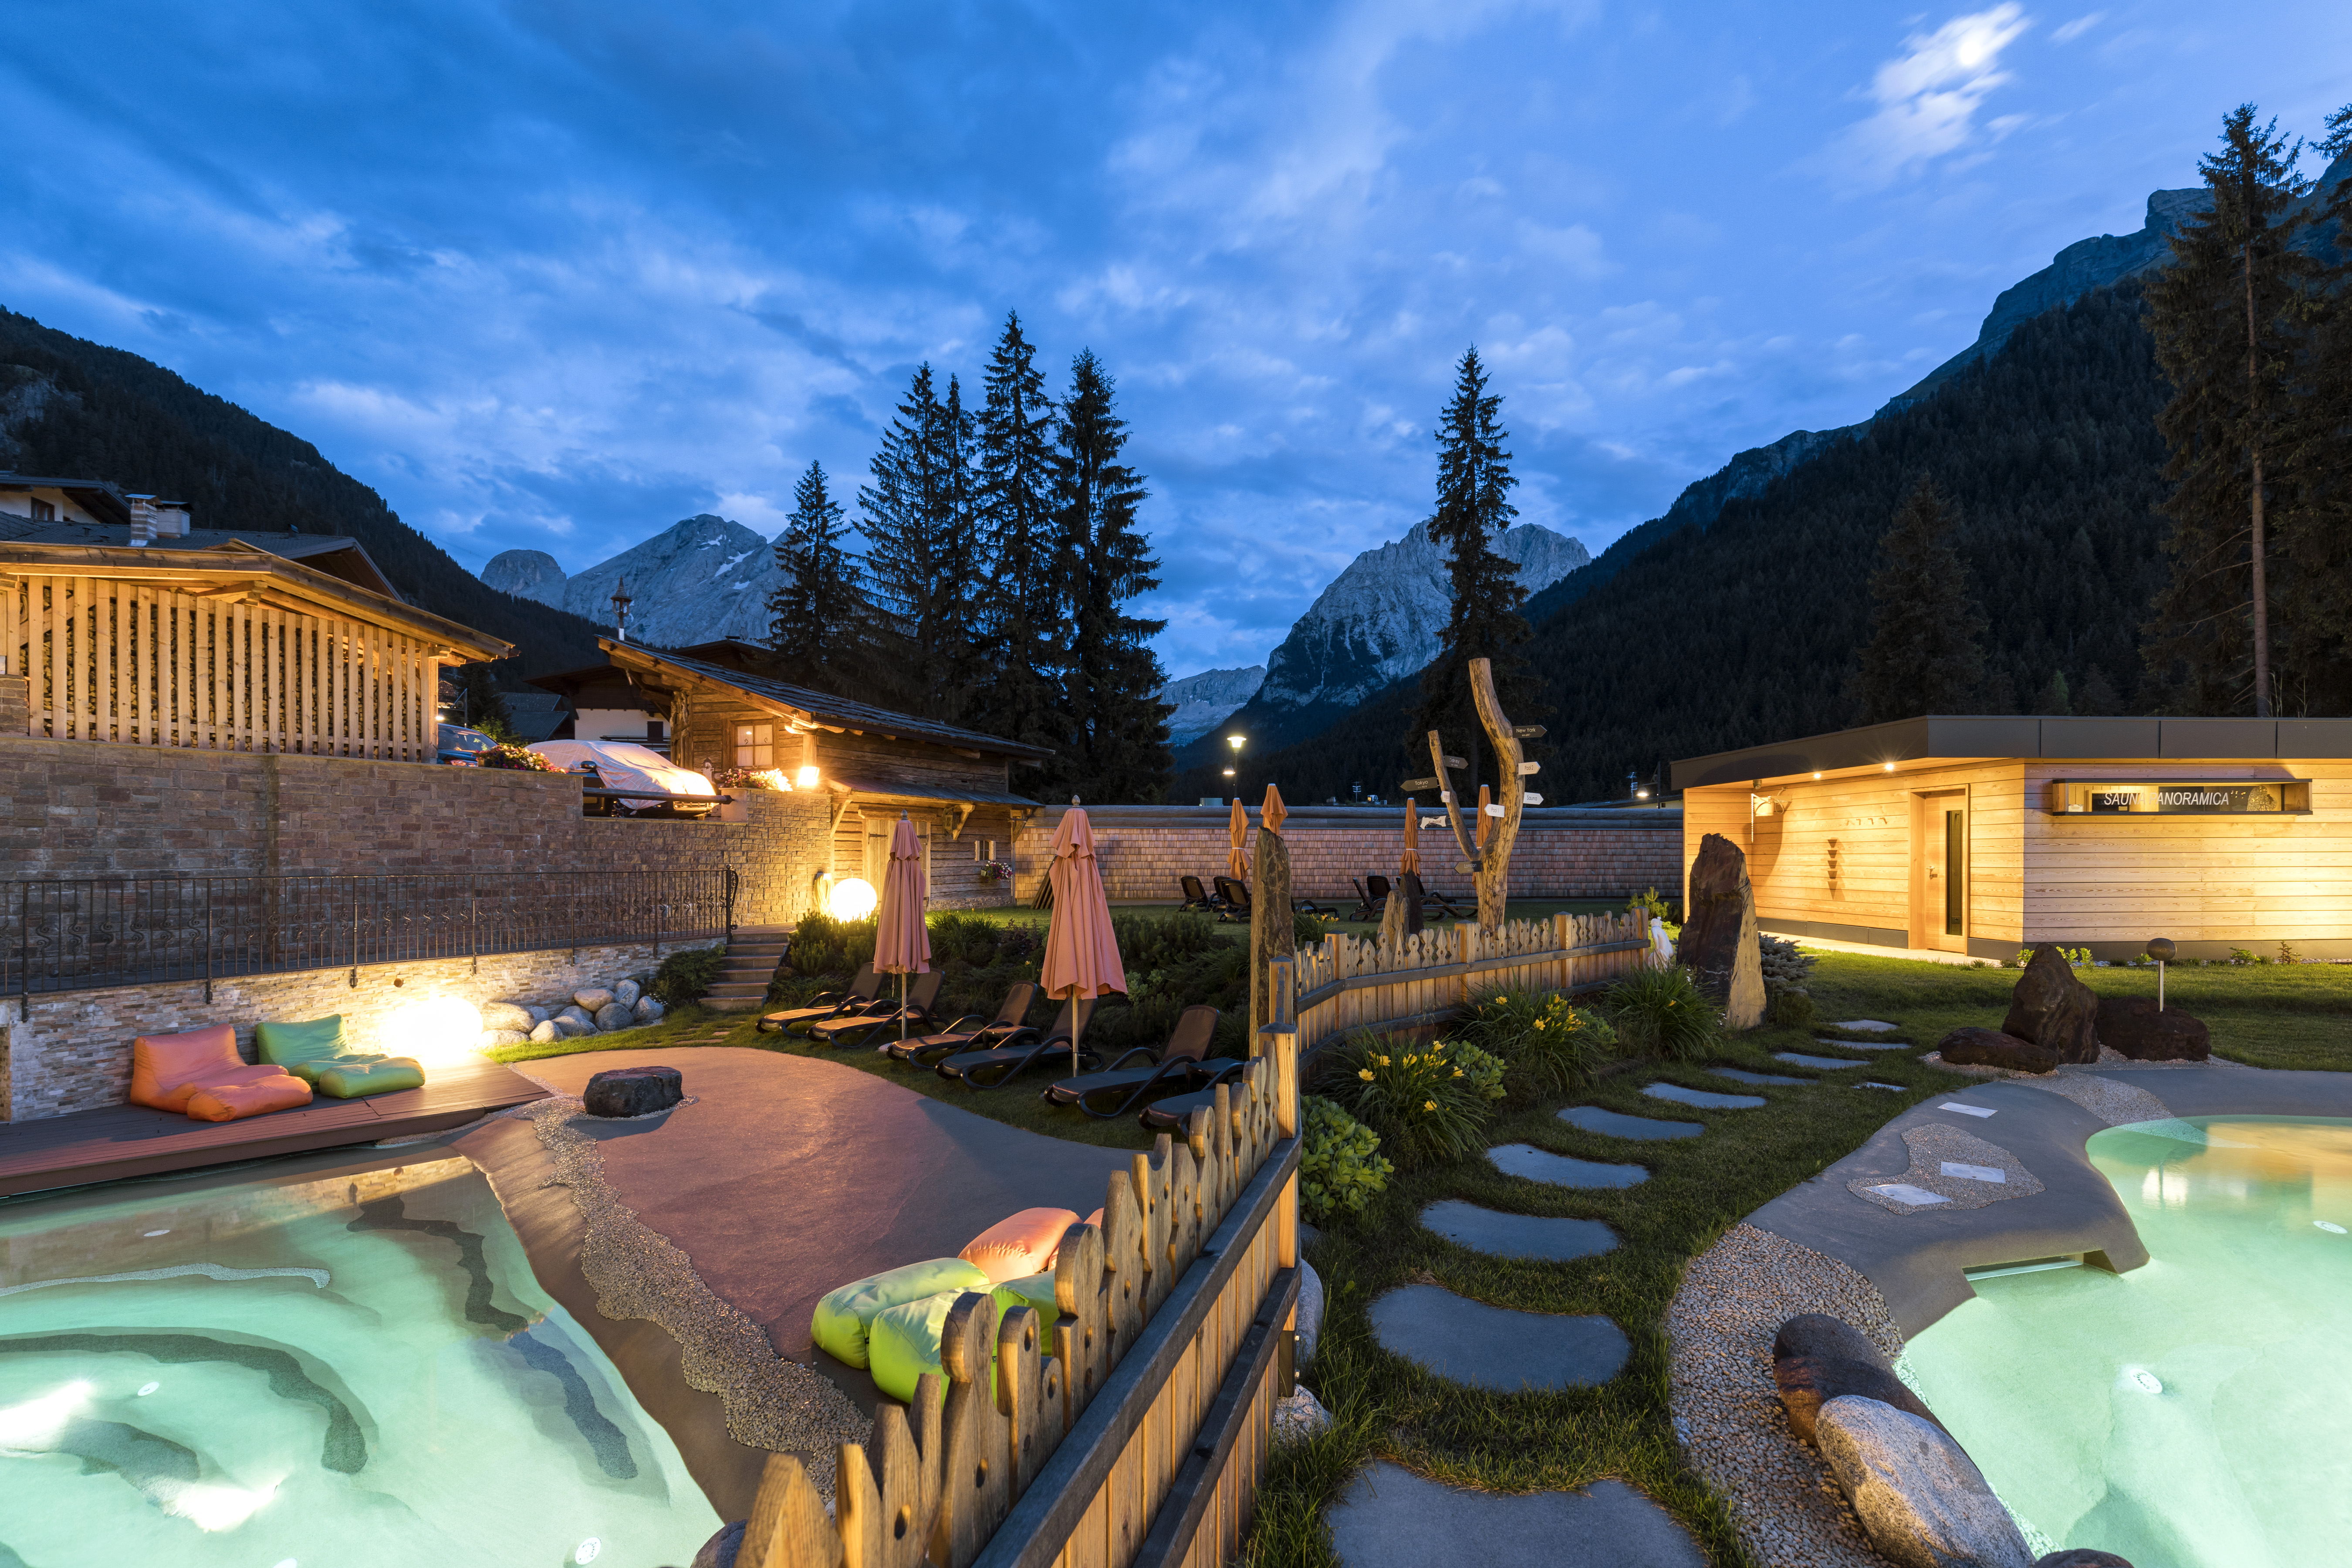 Romantic weekend in the heart of the Dolomites - September 2019